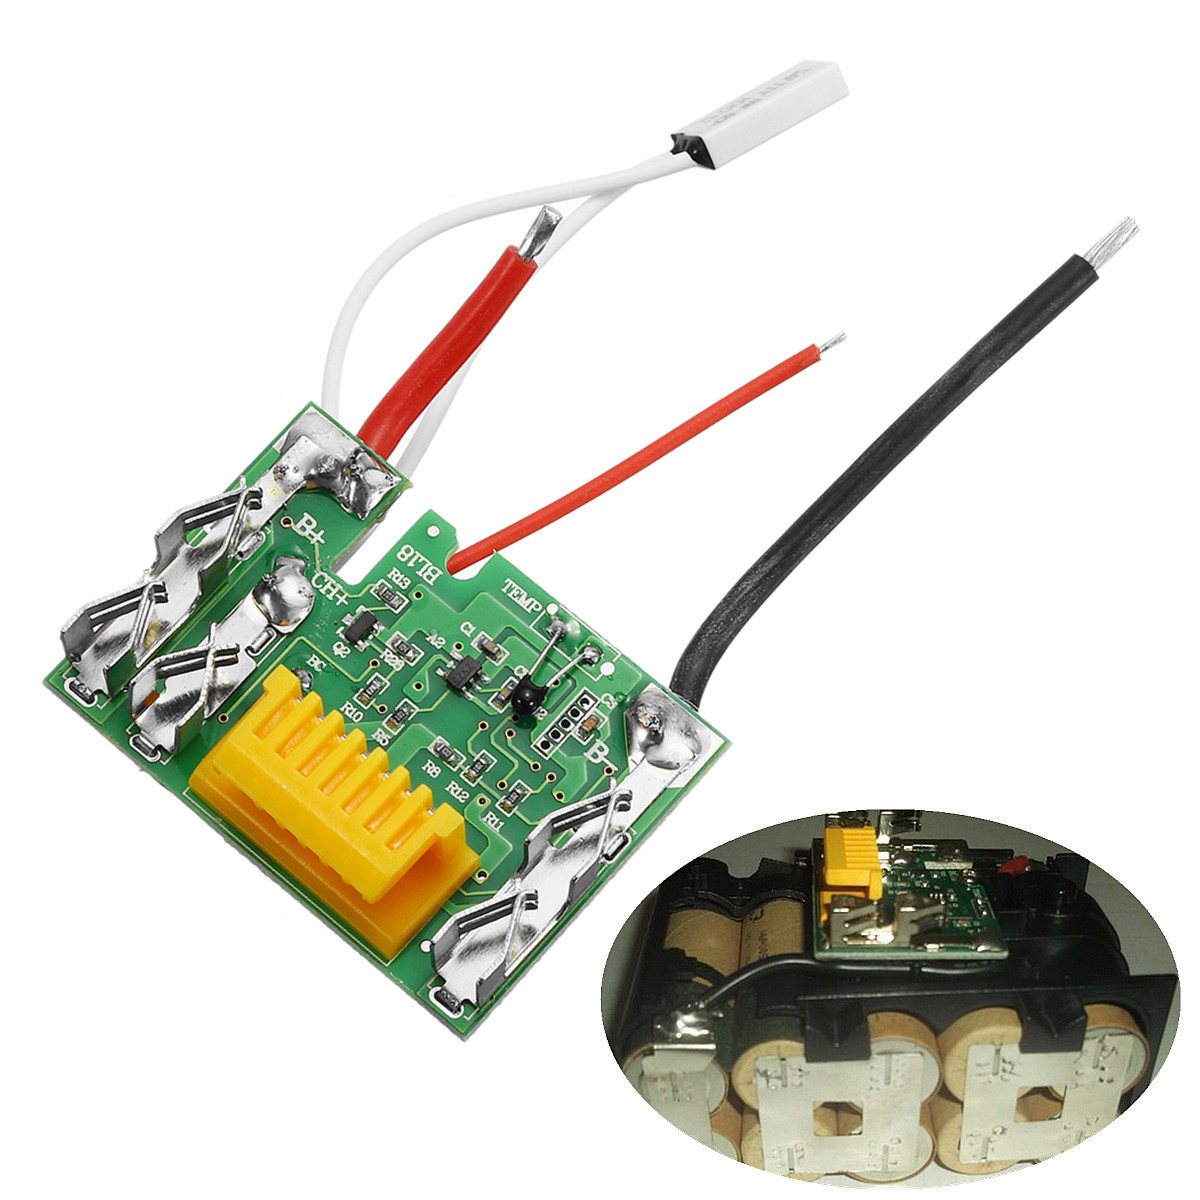 18V PCM PCB Li-ion Lithium Battery Protect Circuit Module Board for Makita Drill Chip Electric Tools Over Charge Short Circuit